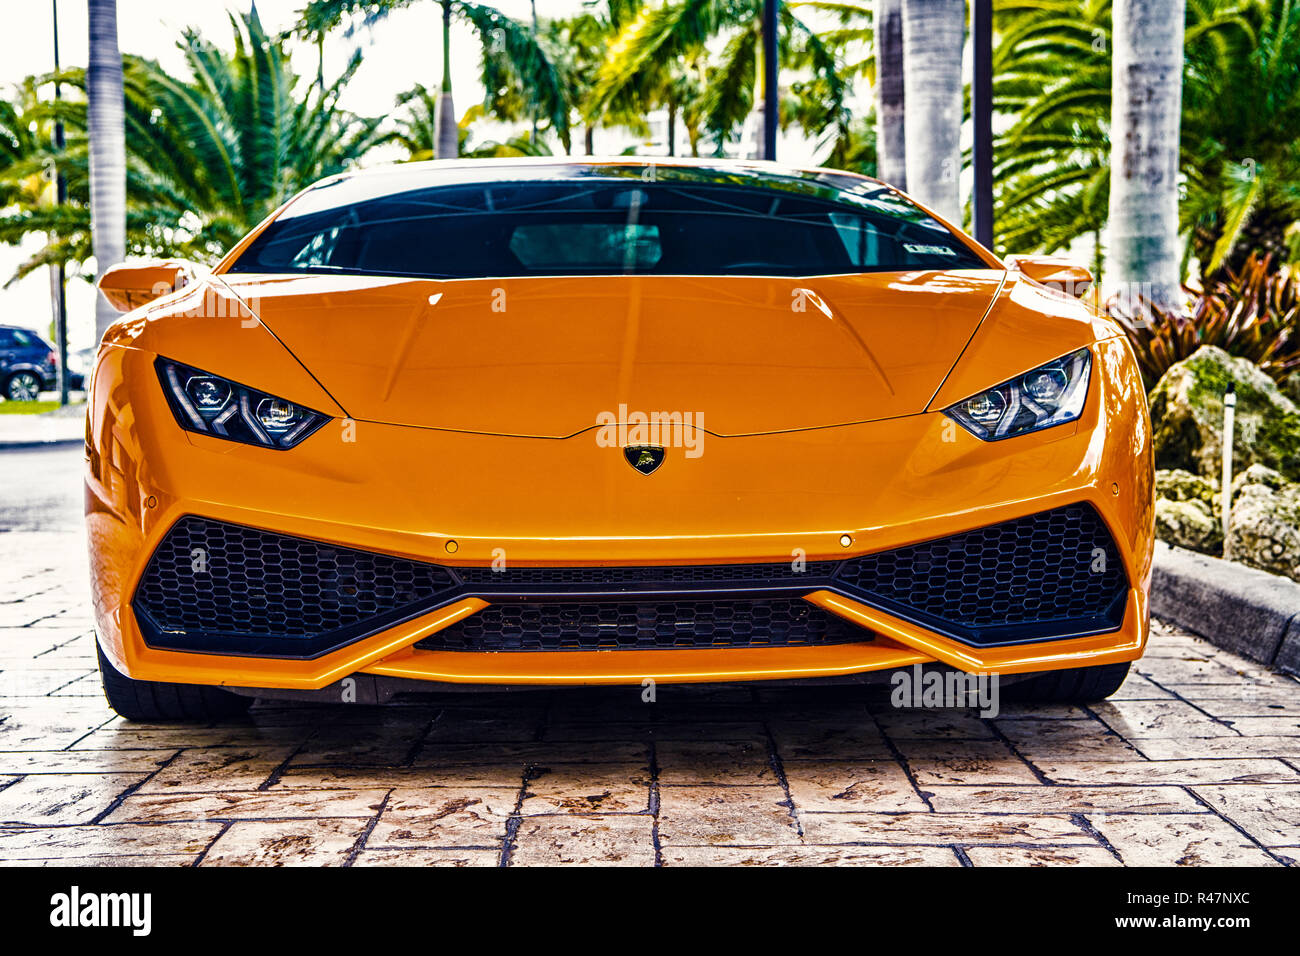 Miami Florida Usa February 19 2016 Supercar Lamborghini